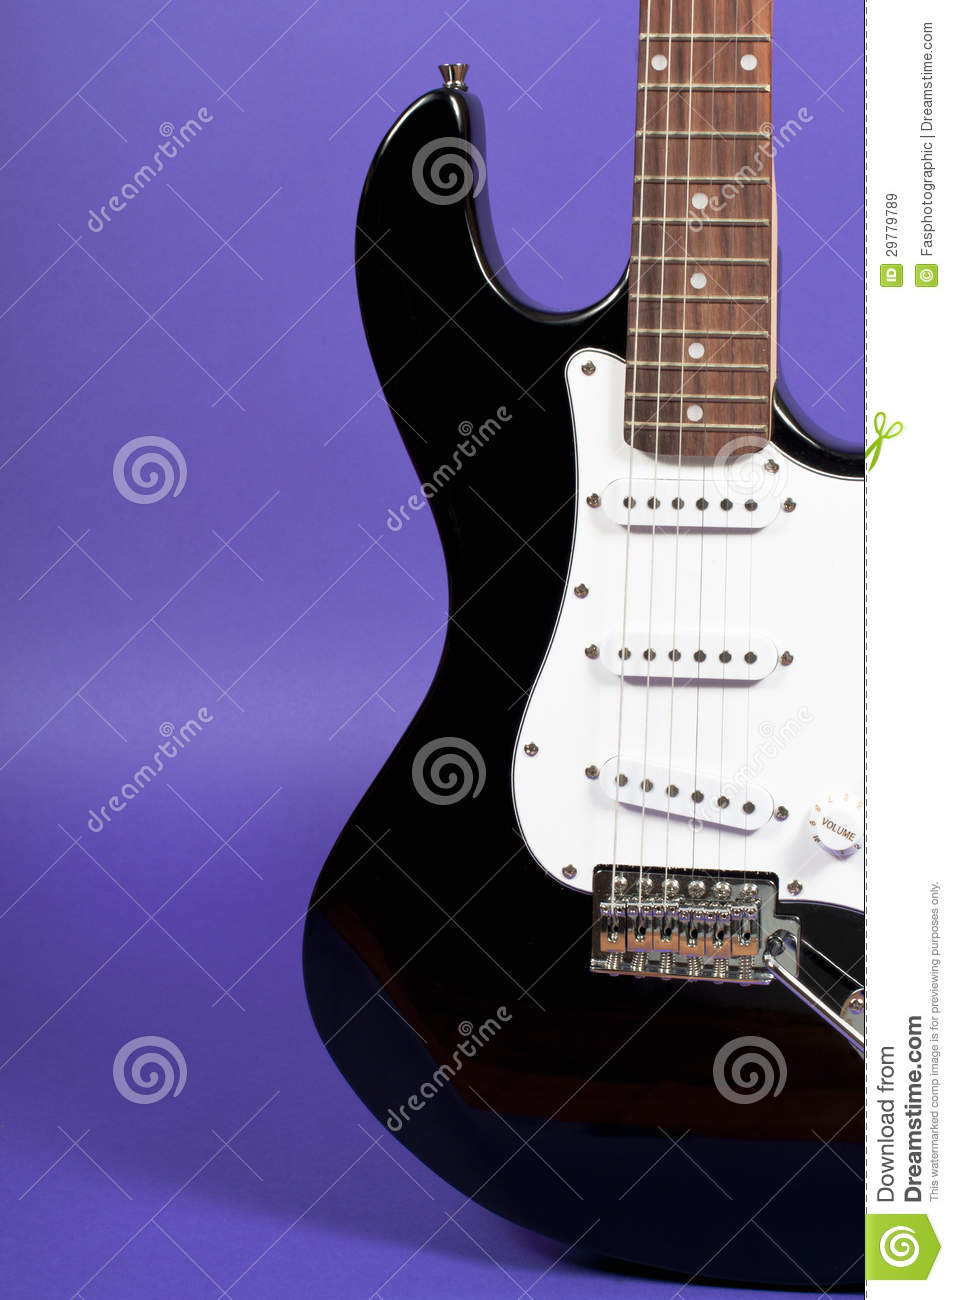 Electric Guitar On Purple Royalty Free Stock Images ...